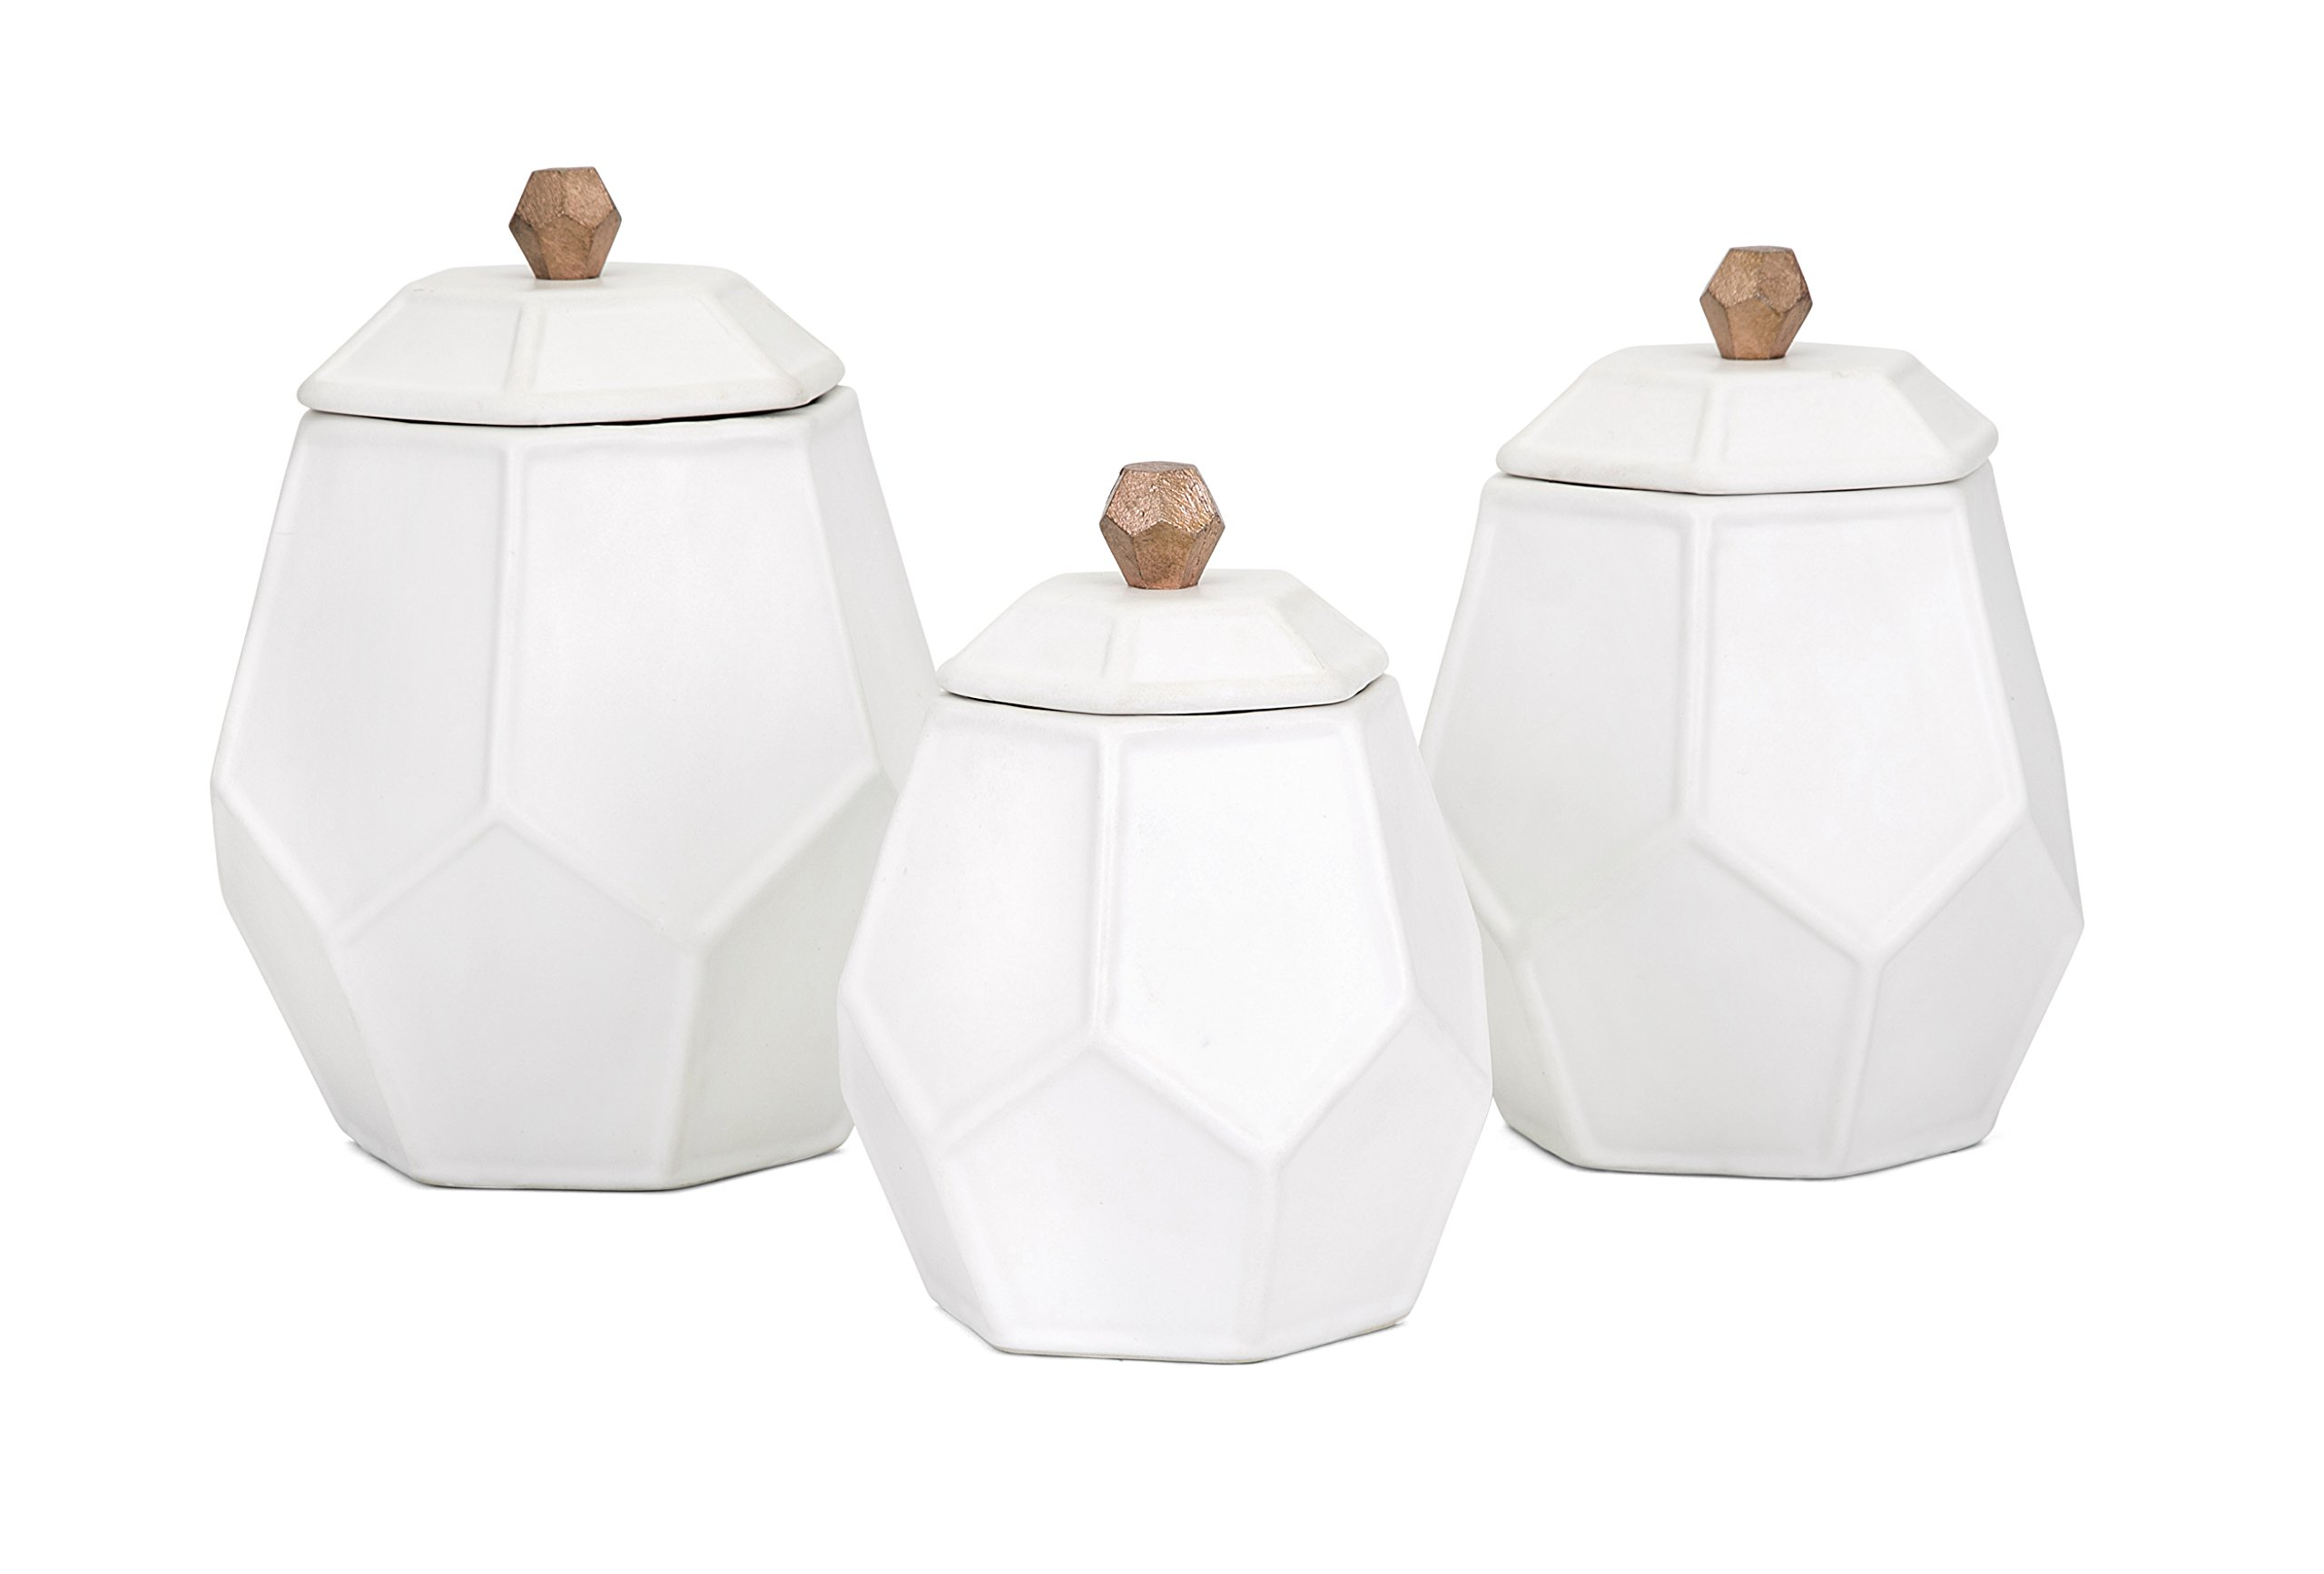 Trisha Yearwood Home Collection 95809-3 Ty Songbird Geometric Canisters - Set of 3 Trisha Yearwood Home Set of 3 Songbird Geometric Canisters by Imax